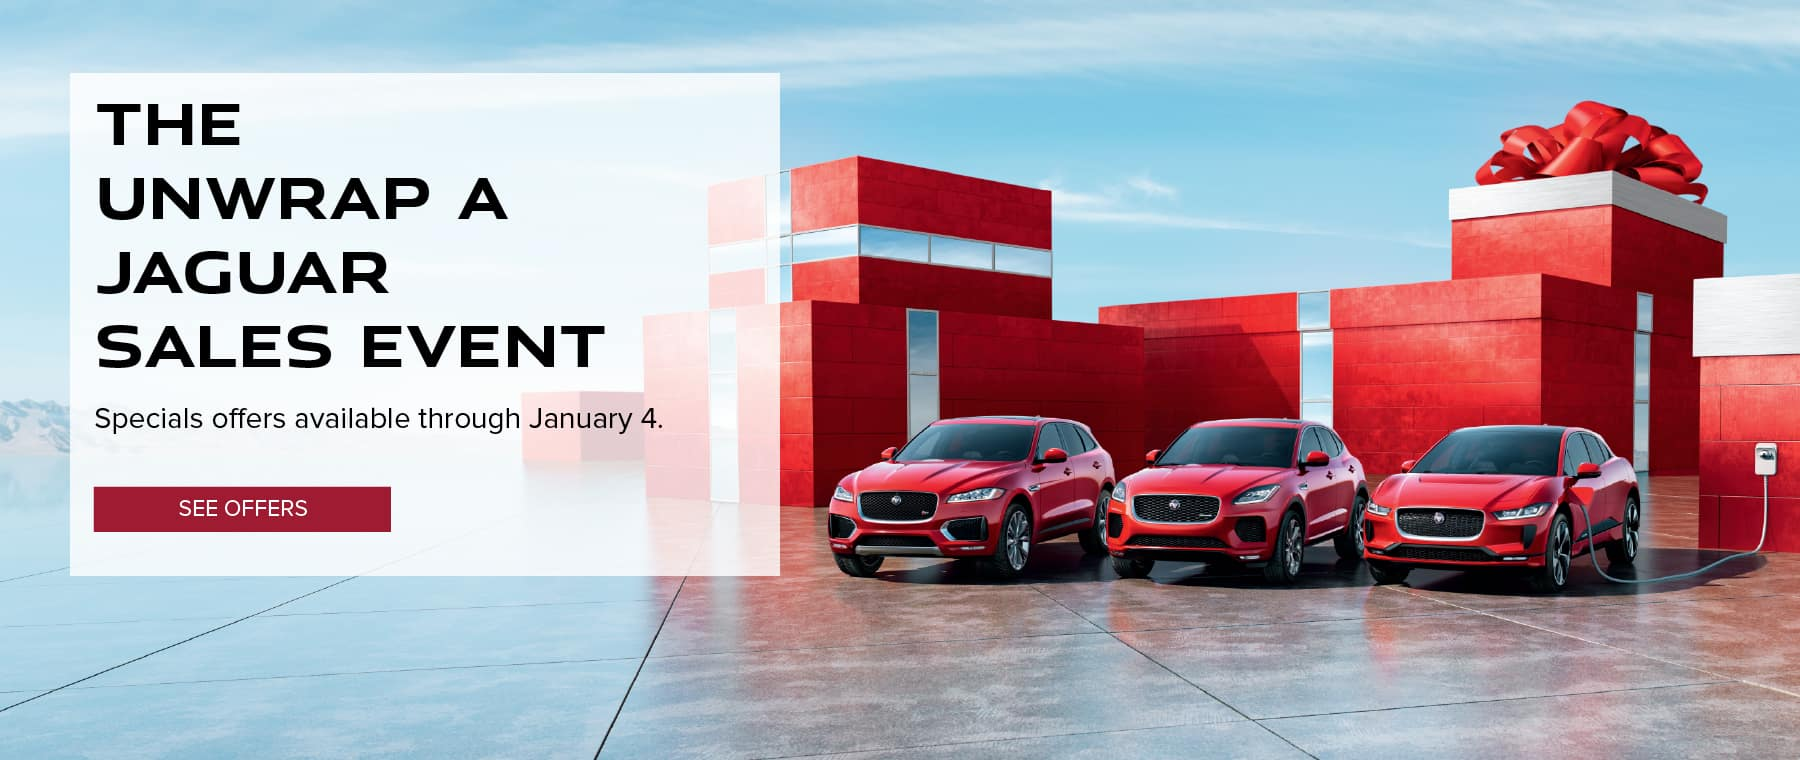 THE UNWRAP A JAGUAR SALES EVENT. SPECIALS OFFERS AVAILABLE THROUGH JANUARY 4. SEE OFFERS. IMAGE FEATURES RED JAGUAR PACE FAMILY OF VEHICLES IN FRONT OF RED HOLIDAY PACKAGES.